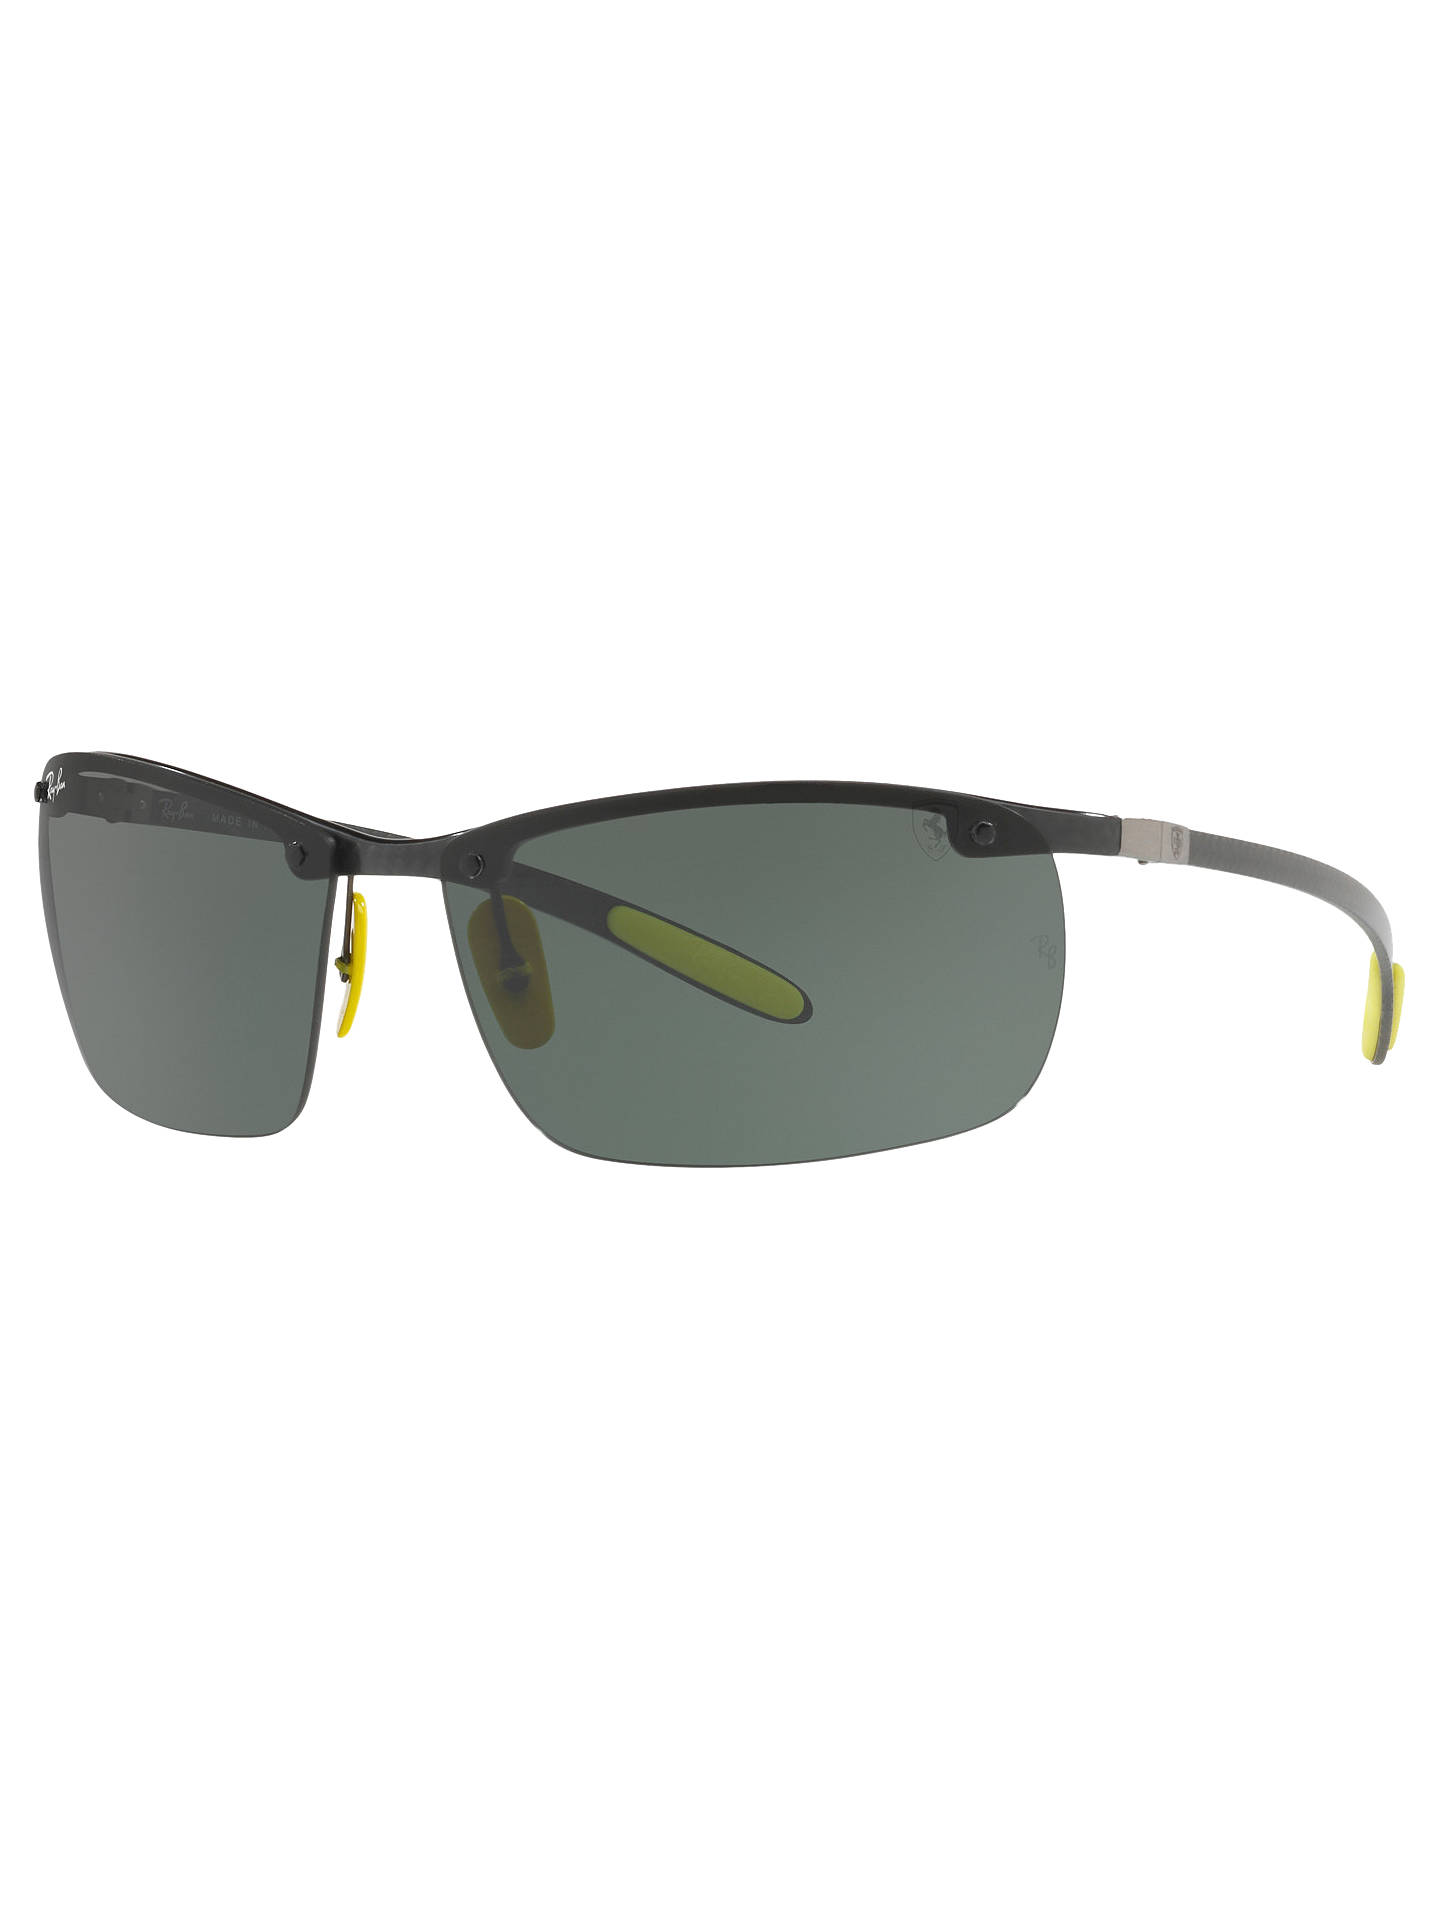 9621f4de9617 Buy Ray-Ban RB8305M Scuderia Ferrari Wrap Sunglasses, Black/Grey Online at  johnlewis ...